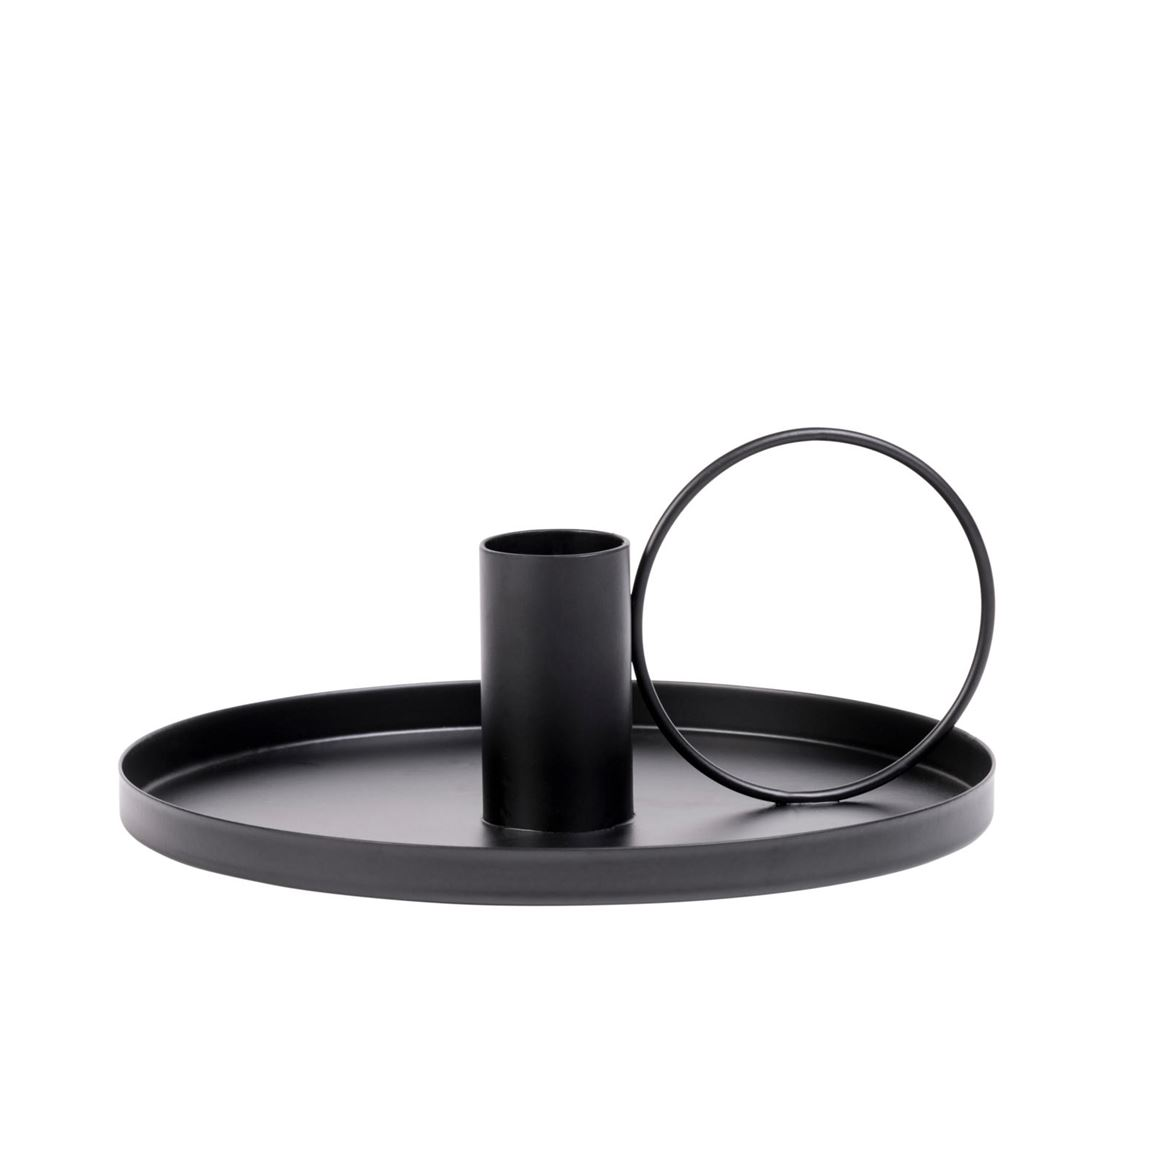 CIRCLE Bougeoir noir H 8 cm; Ø 19 cm_circle-bougeoir-noir-h-8-cm;-ø-19-cm